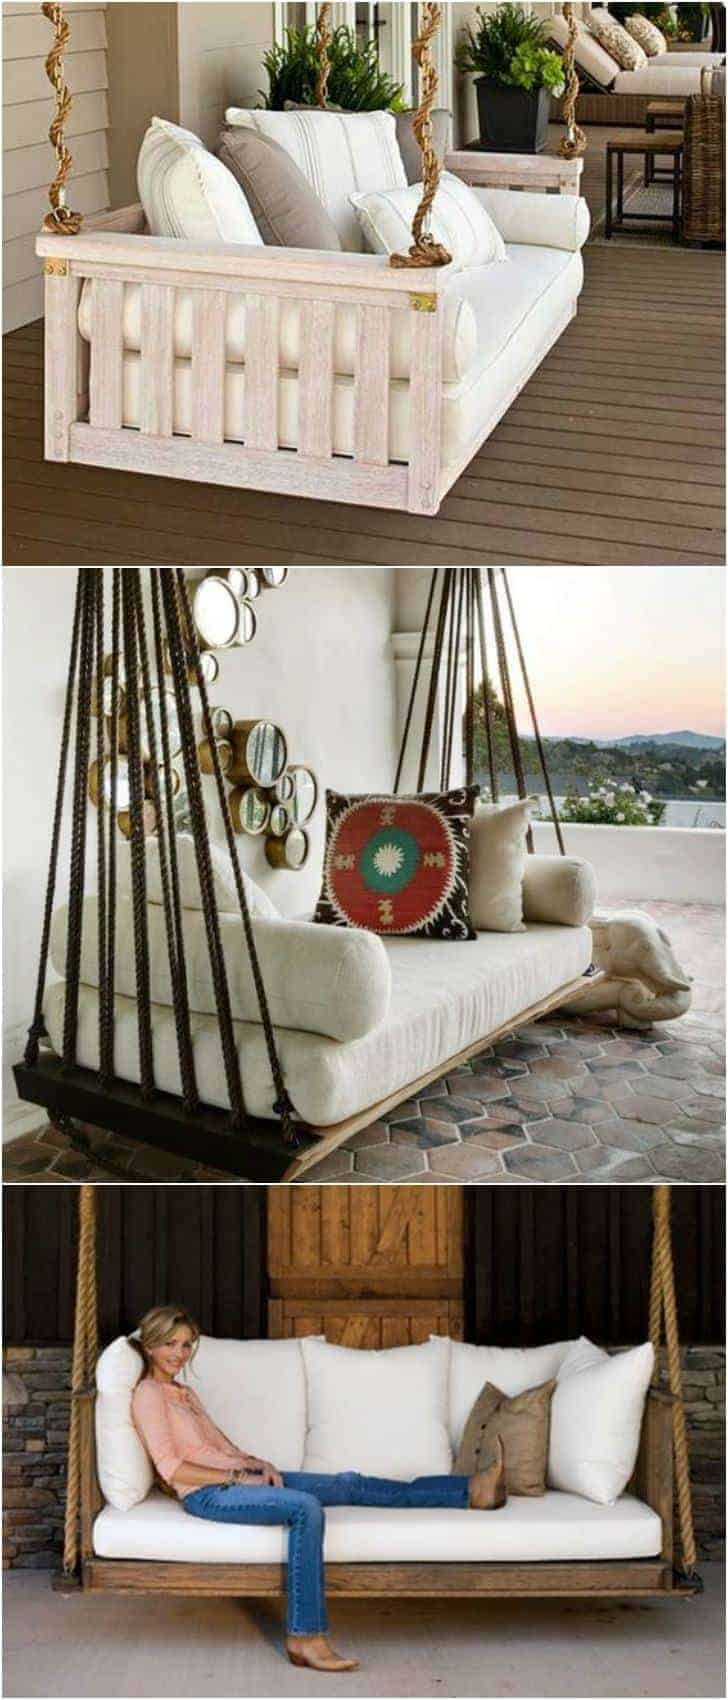 7 Diy Outdoor Swings That Ll Make Warm Nights Even Better